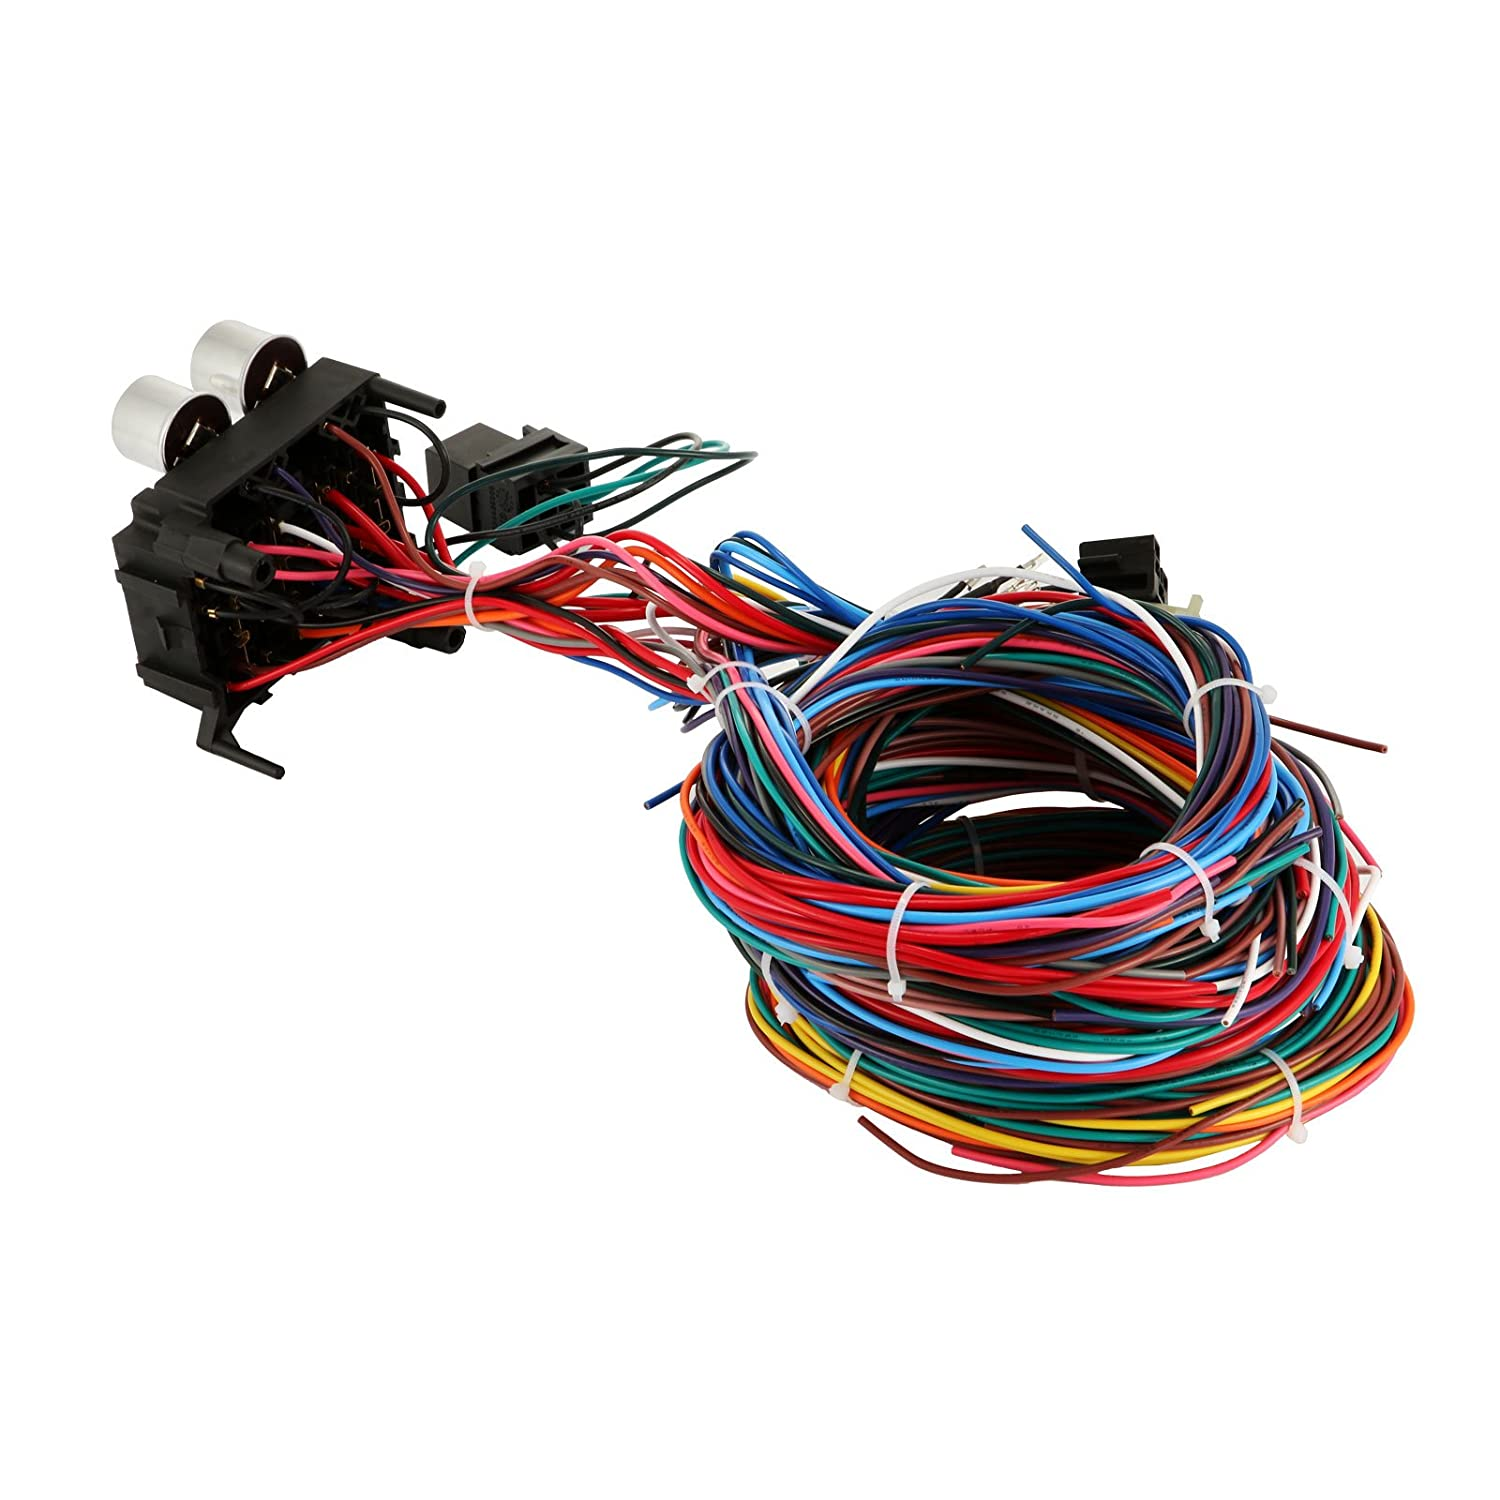 Mophorn Wiring Harness Kit 12 Circuit Hot Rod Universal Painless Diagram Brake Muscle Car Street Xl Wires Automotive